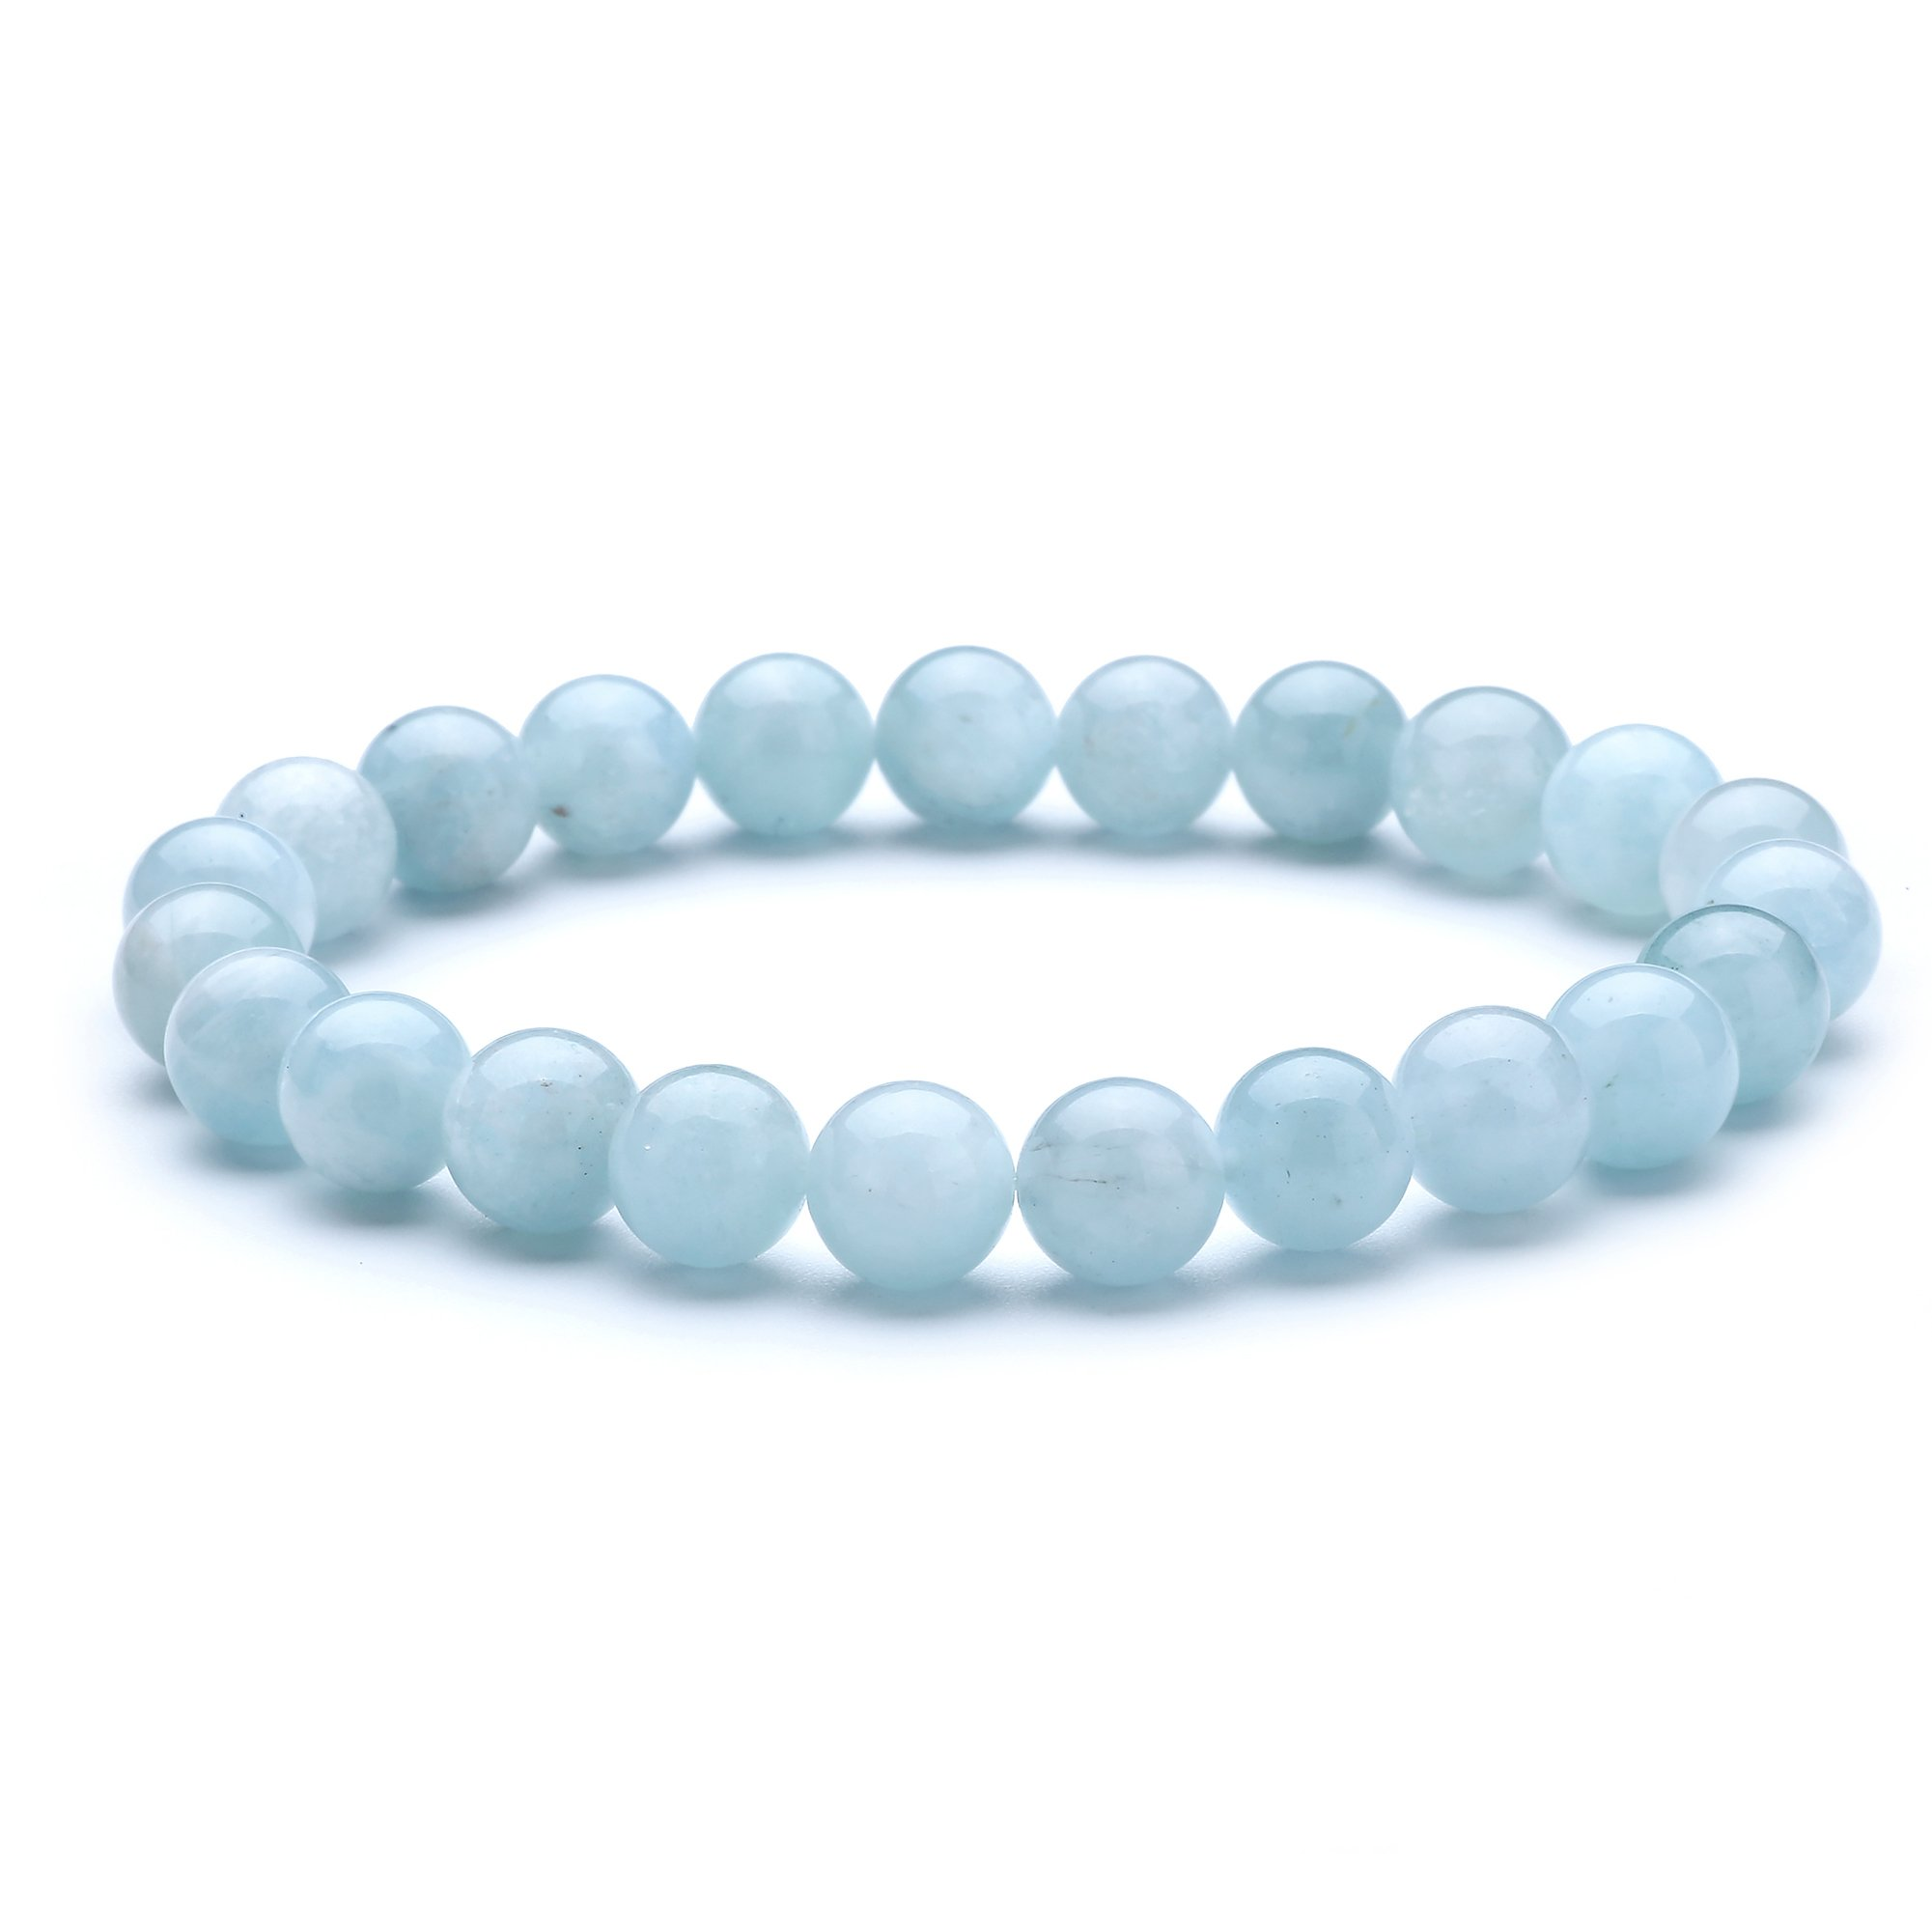 tom+alice 8MM Round Bead Precious Gemstone Beaded Stretch Bracelets Natural Stone Healing Pover 7.1'' Strand Unisex